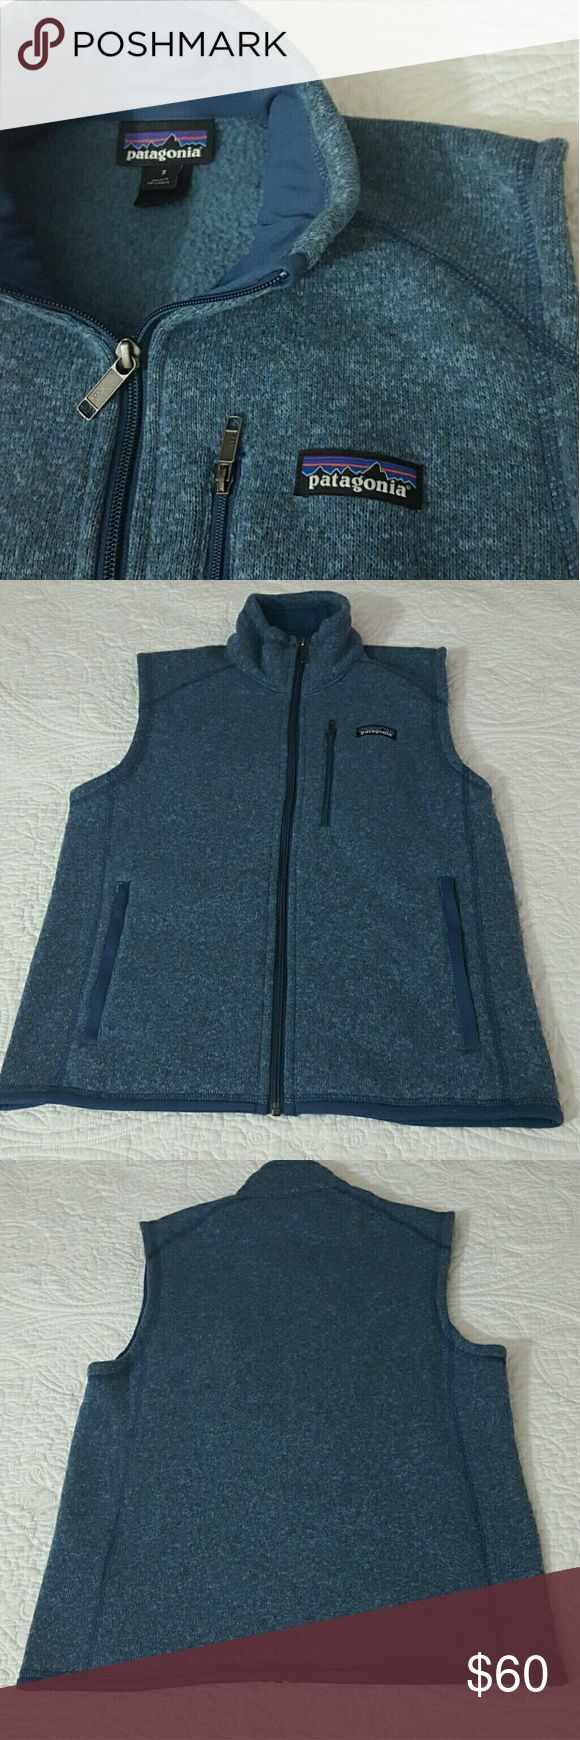 Patagonia Better Sweater Vest Like new condition,heather blue, small men ,can be medium for women Patagonia Jackets & Coats Vests